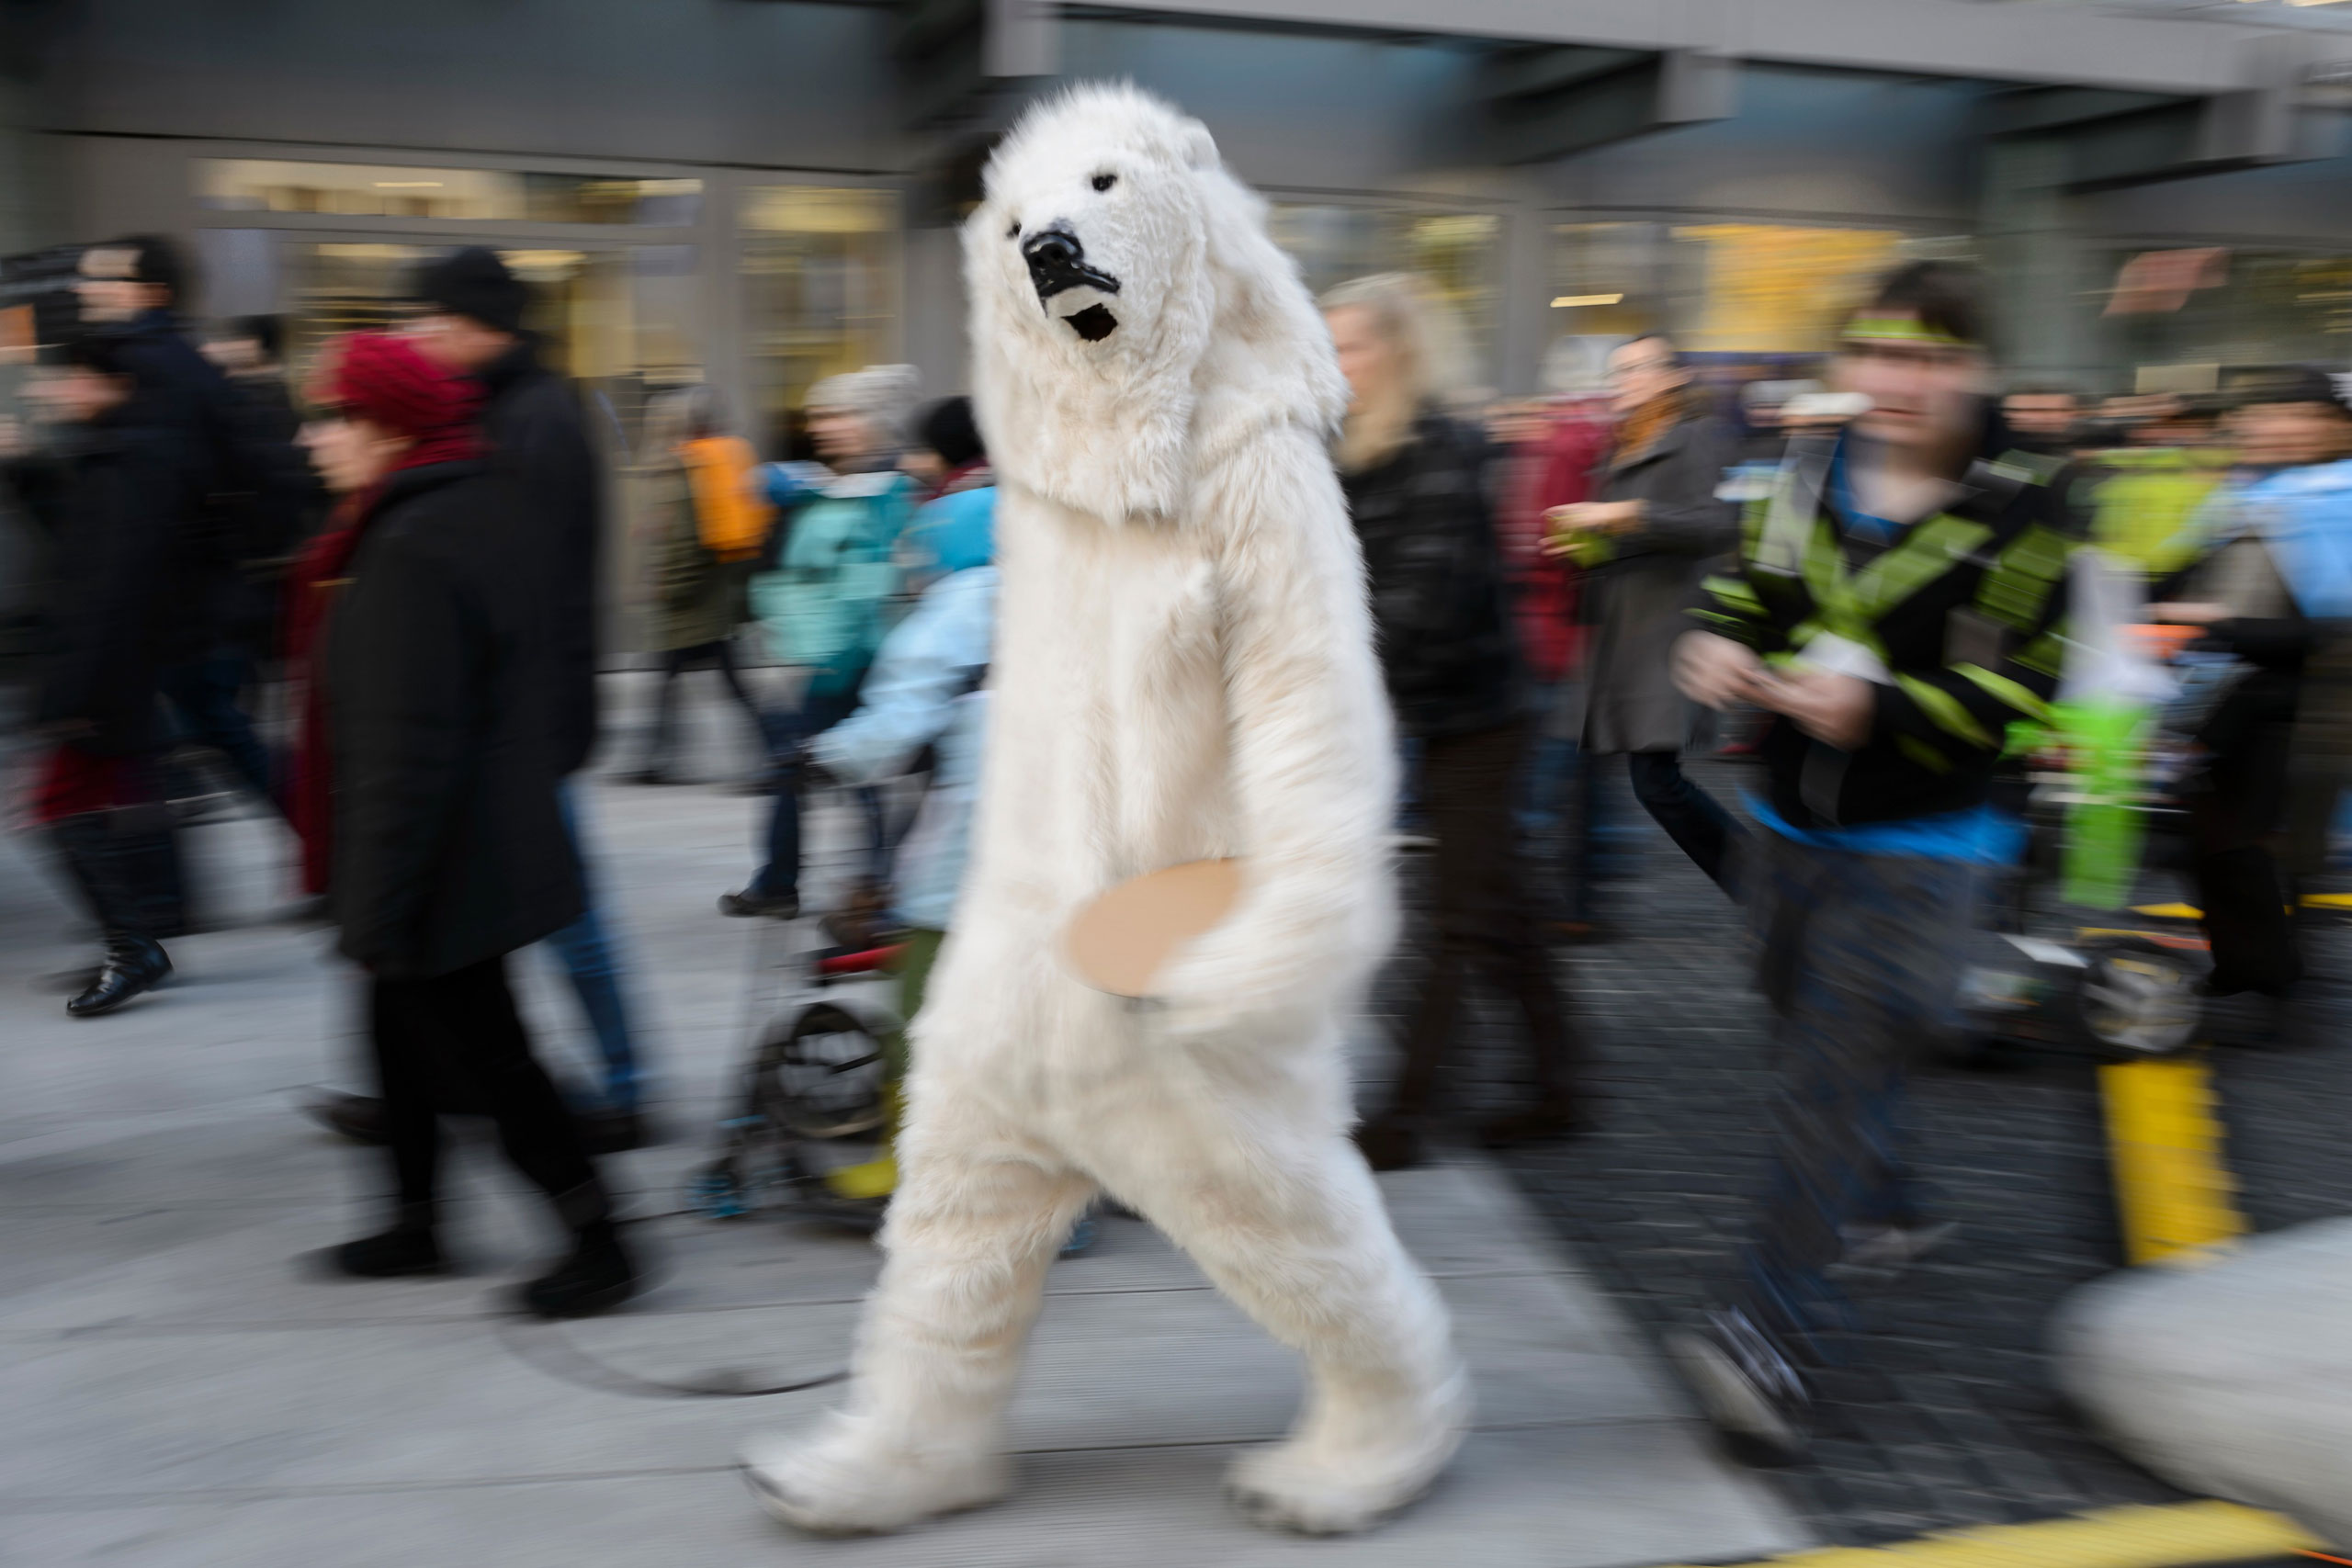 A person dressed as a polar bear walks in Geneva, Switzerland during a rally ahead of the UN climate summit COP21, Nov. 28, 2015.